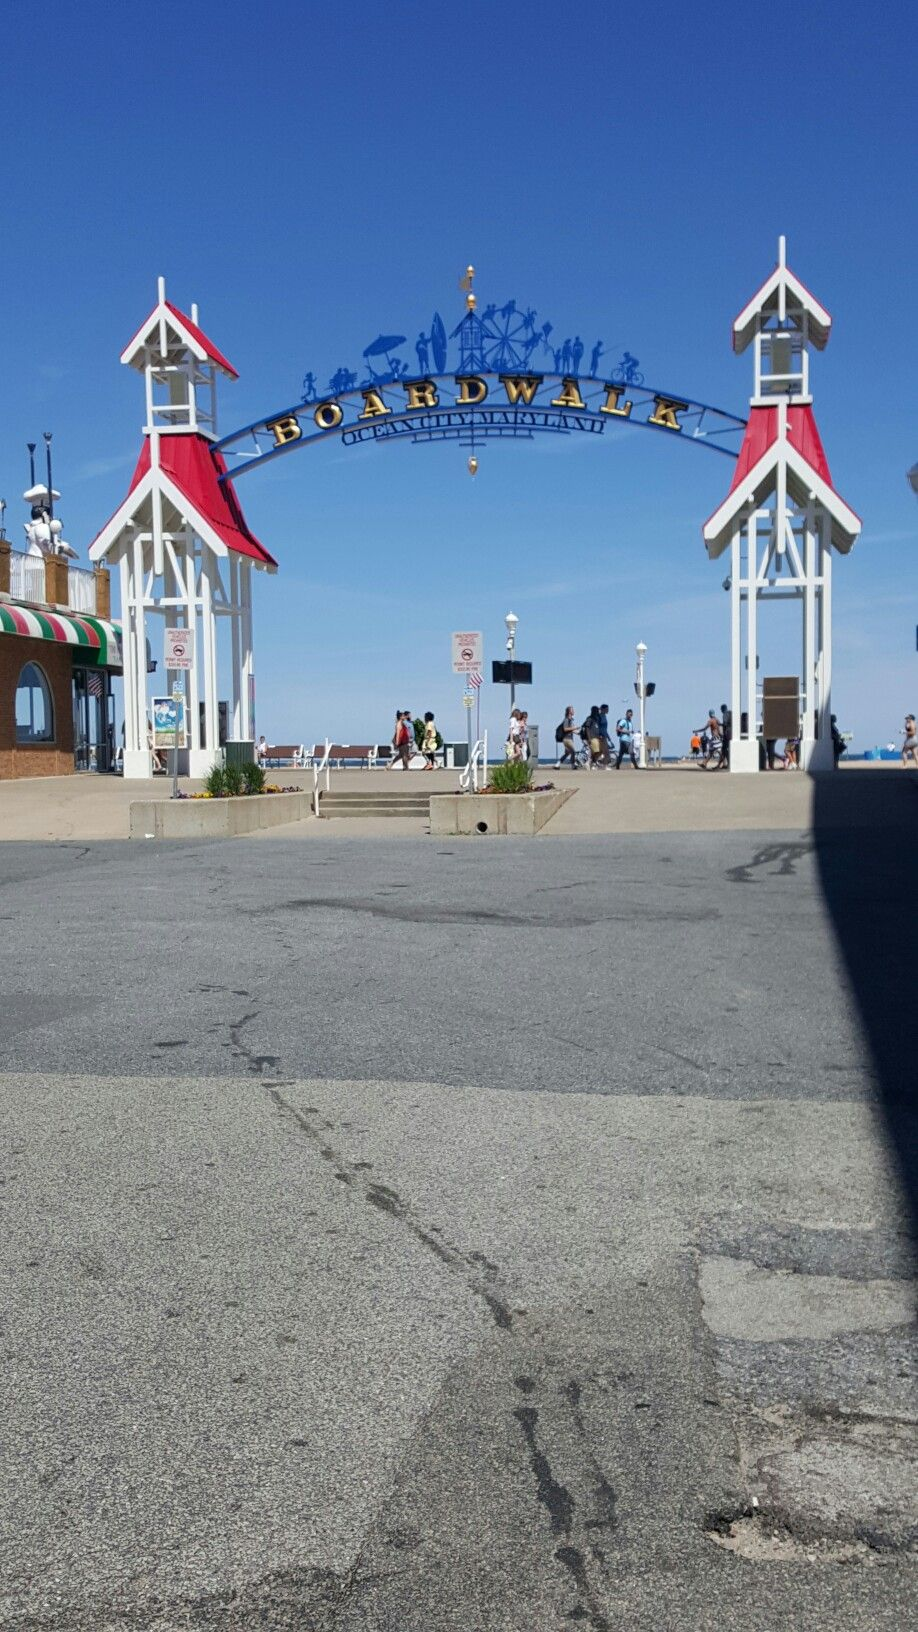 Entrance to the ocean city beach great place to visit it